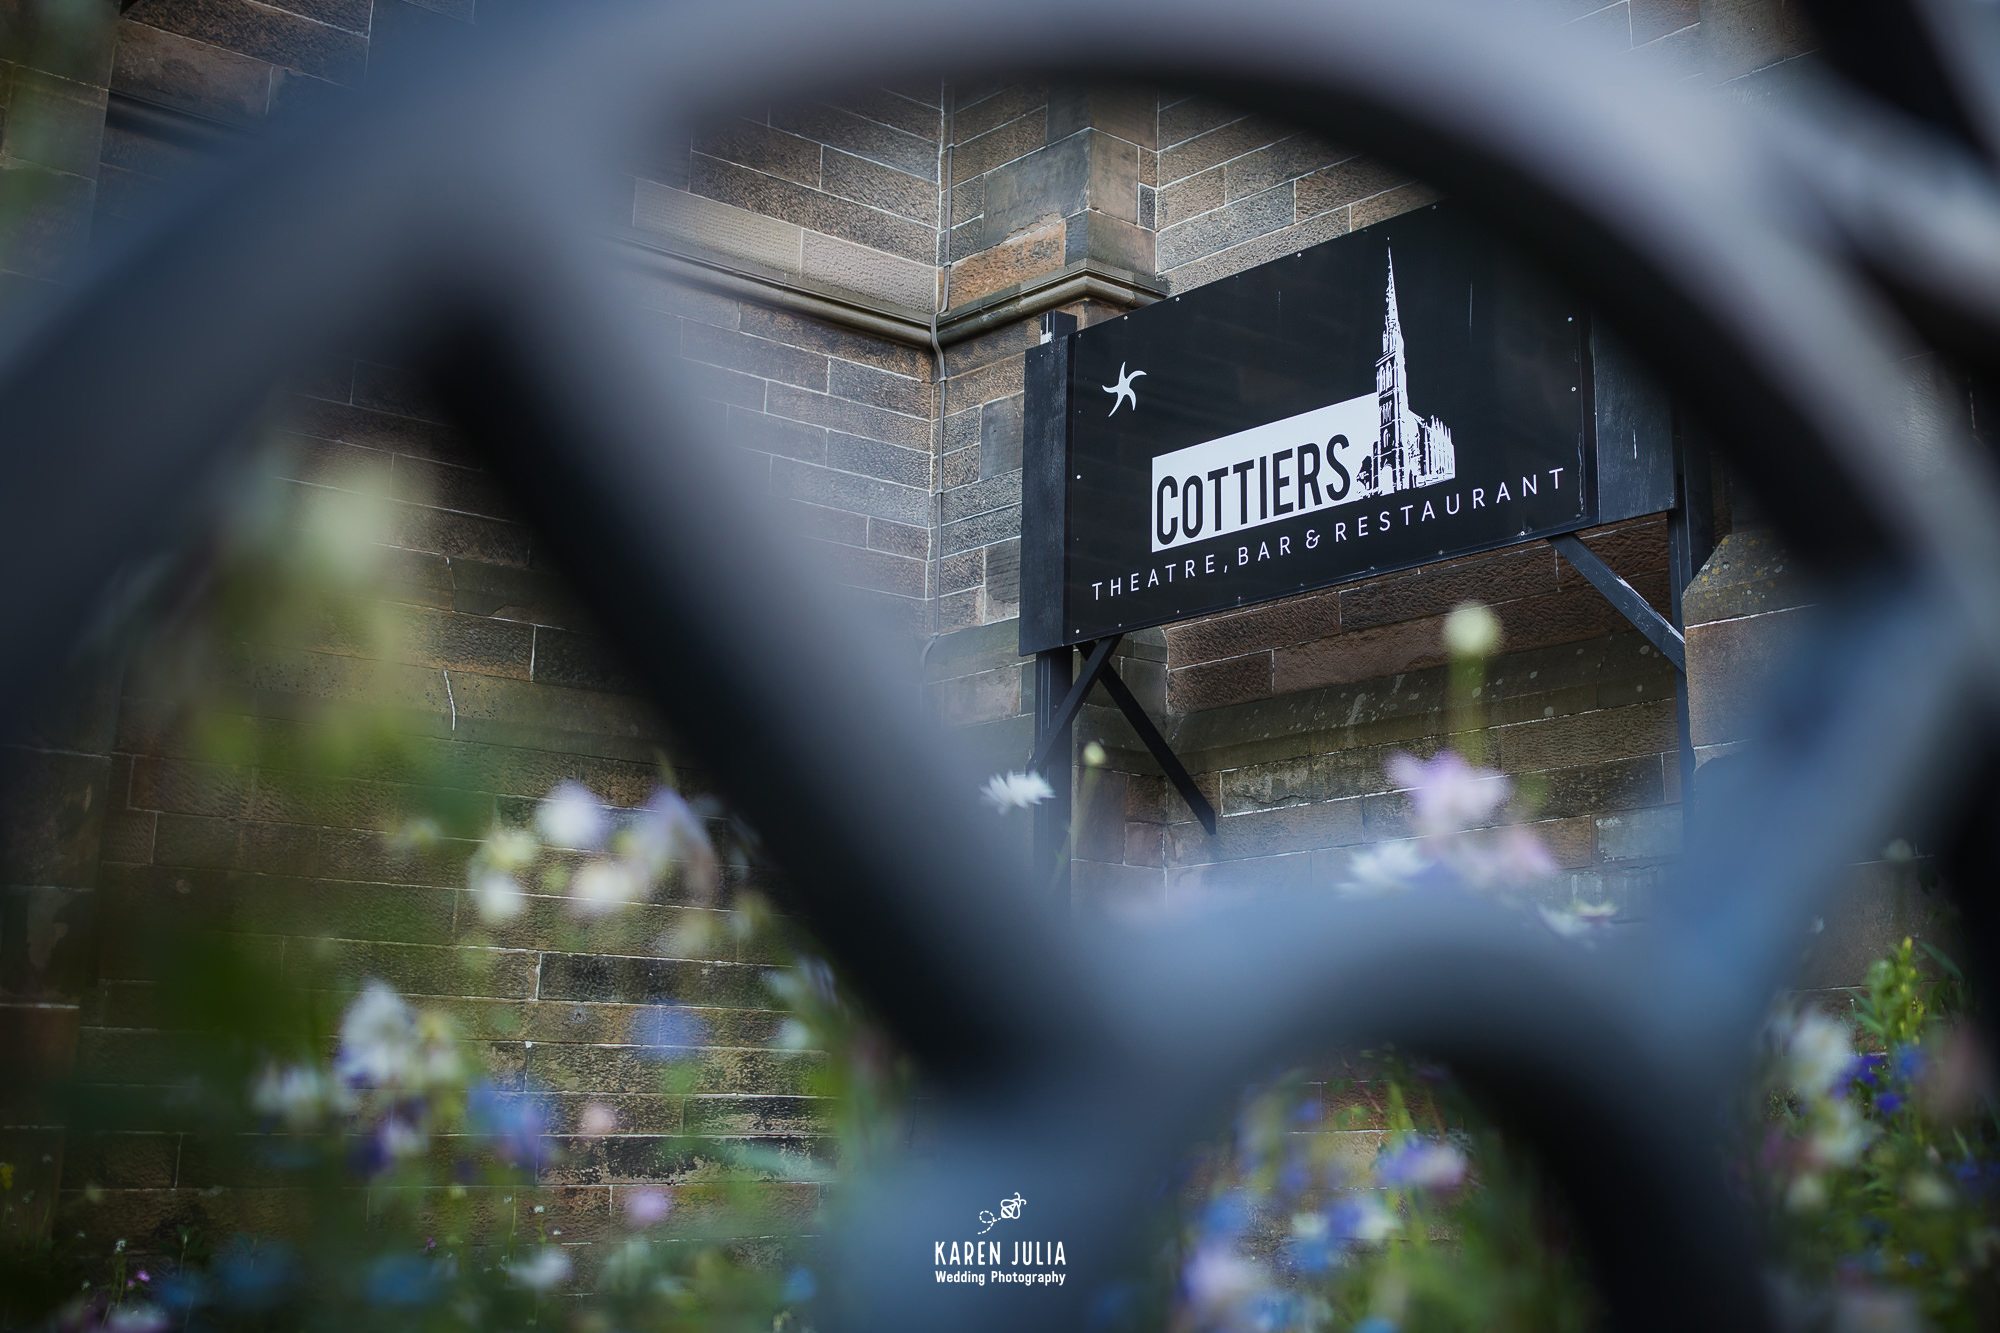 Cottiers Theatre Wedding Venue by Glasgow wedding photographer Karen Julia Photography